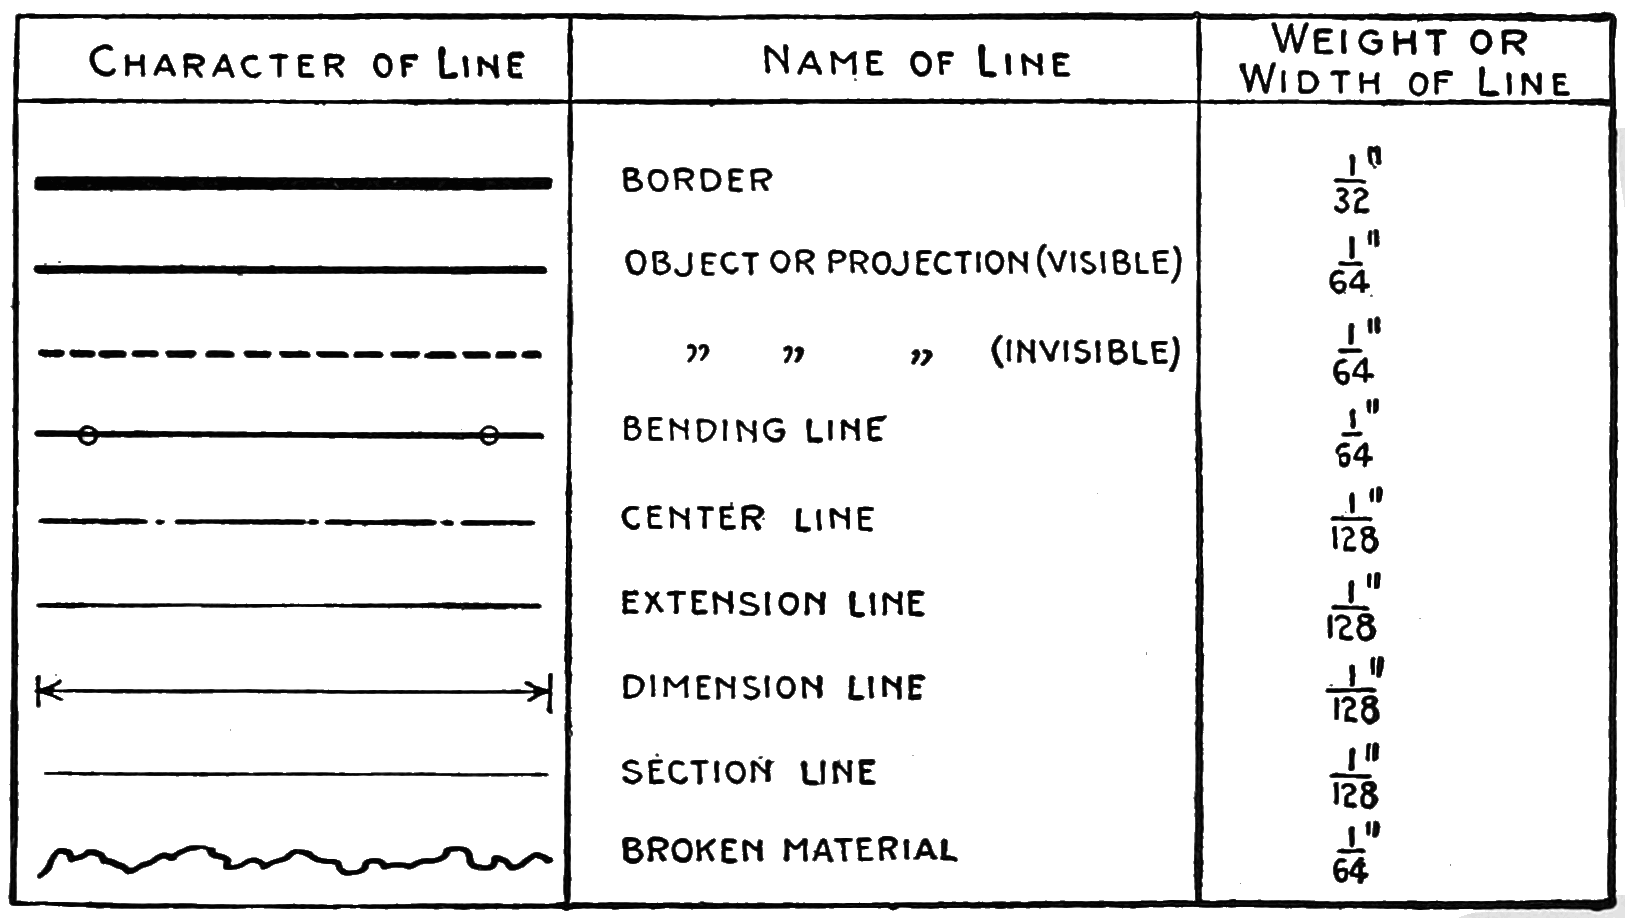 Drawing Lines Types : Page sheet metal drafting djvu wikisource the free